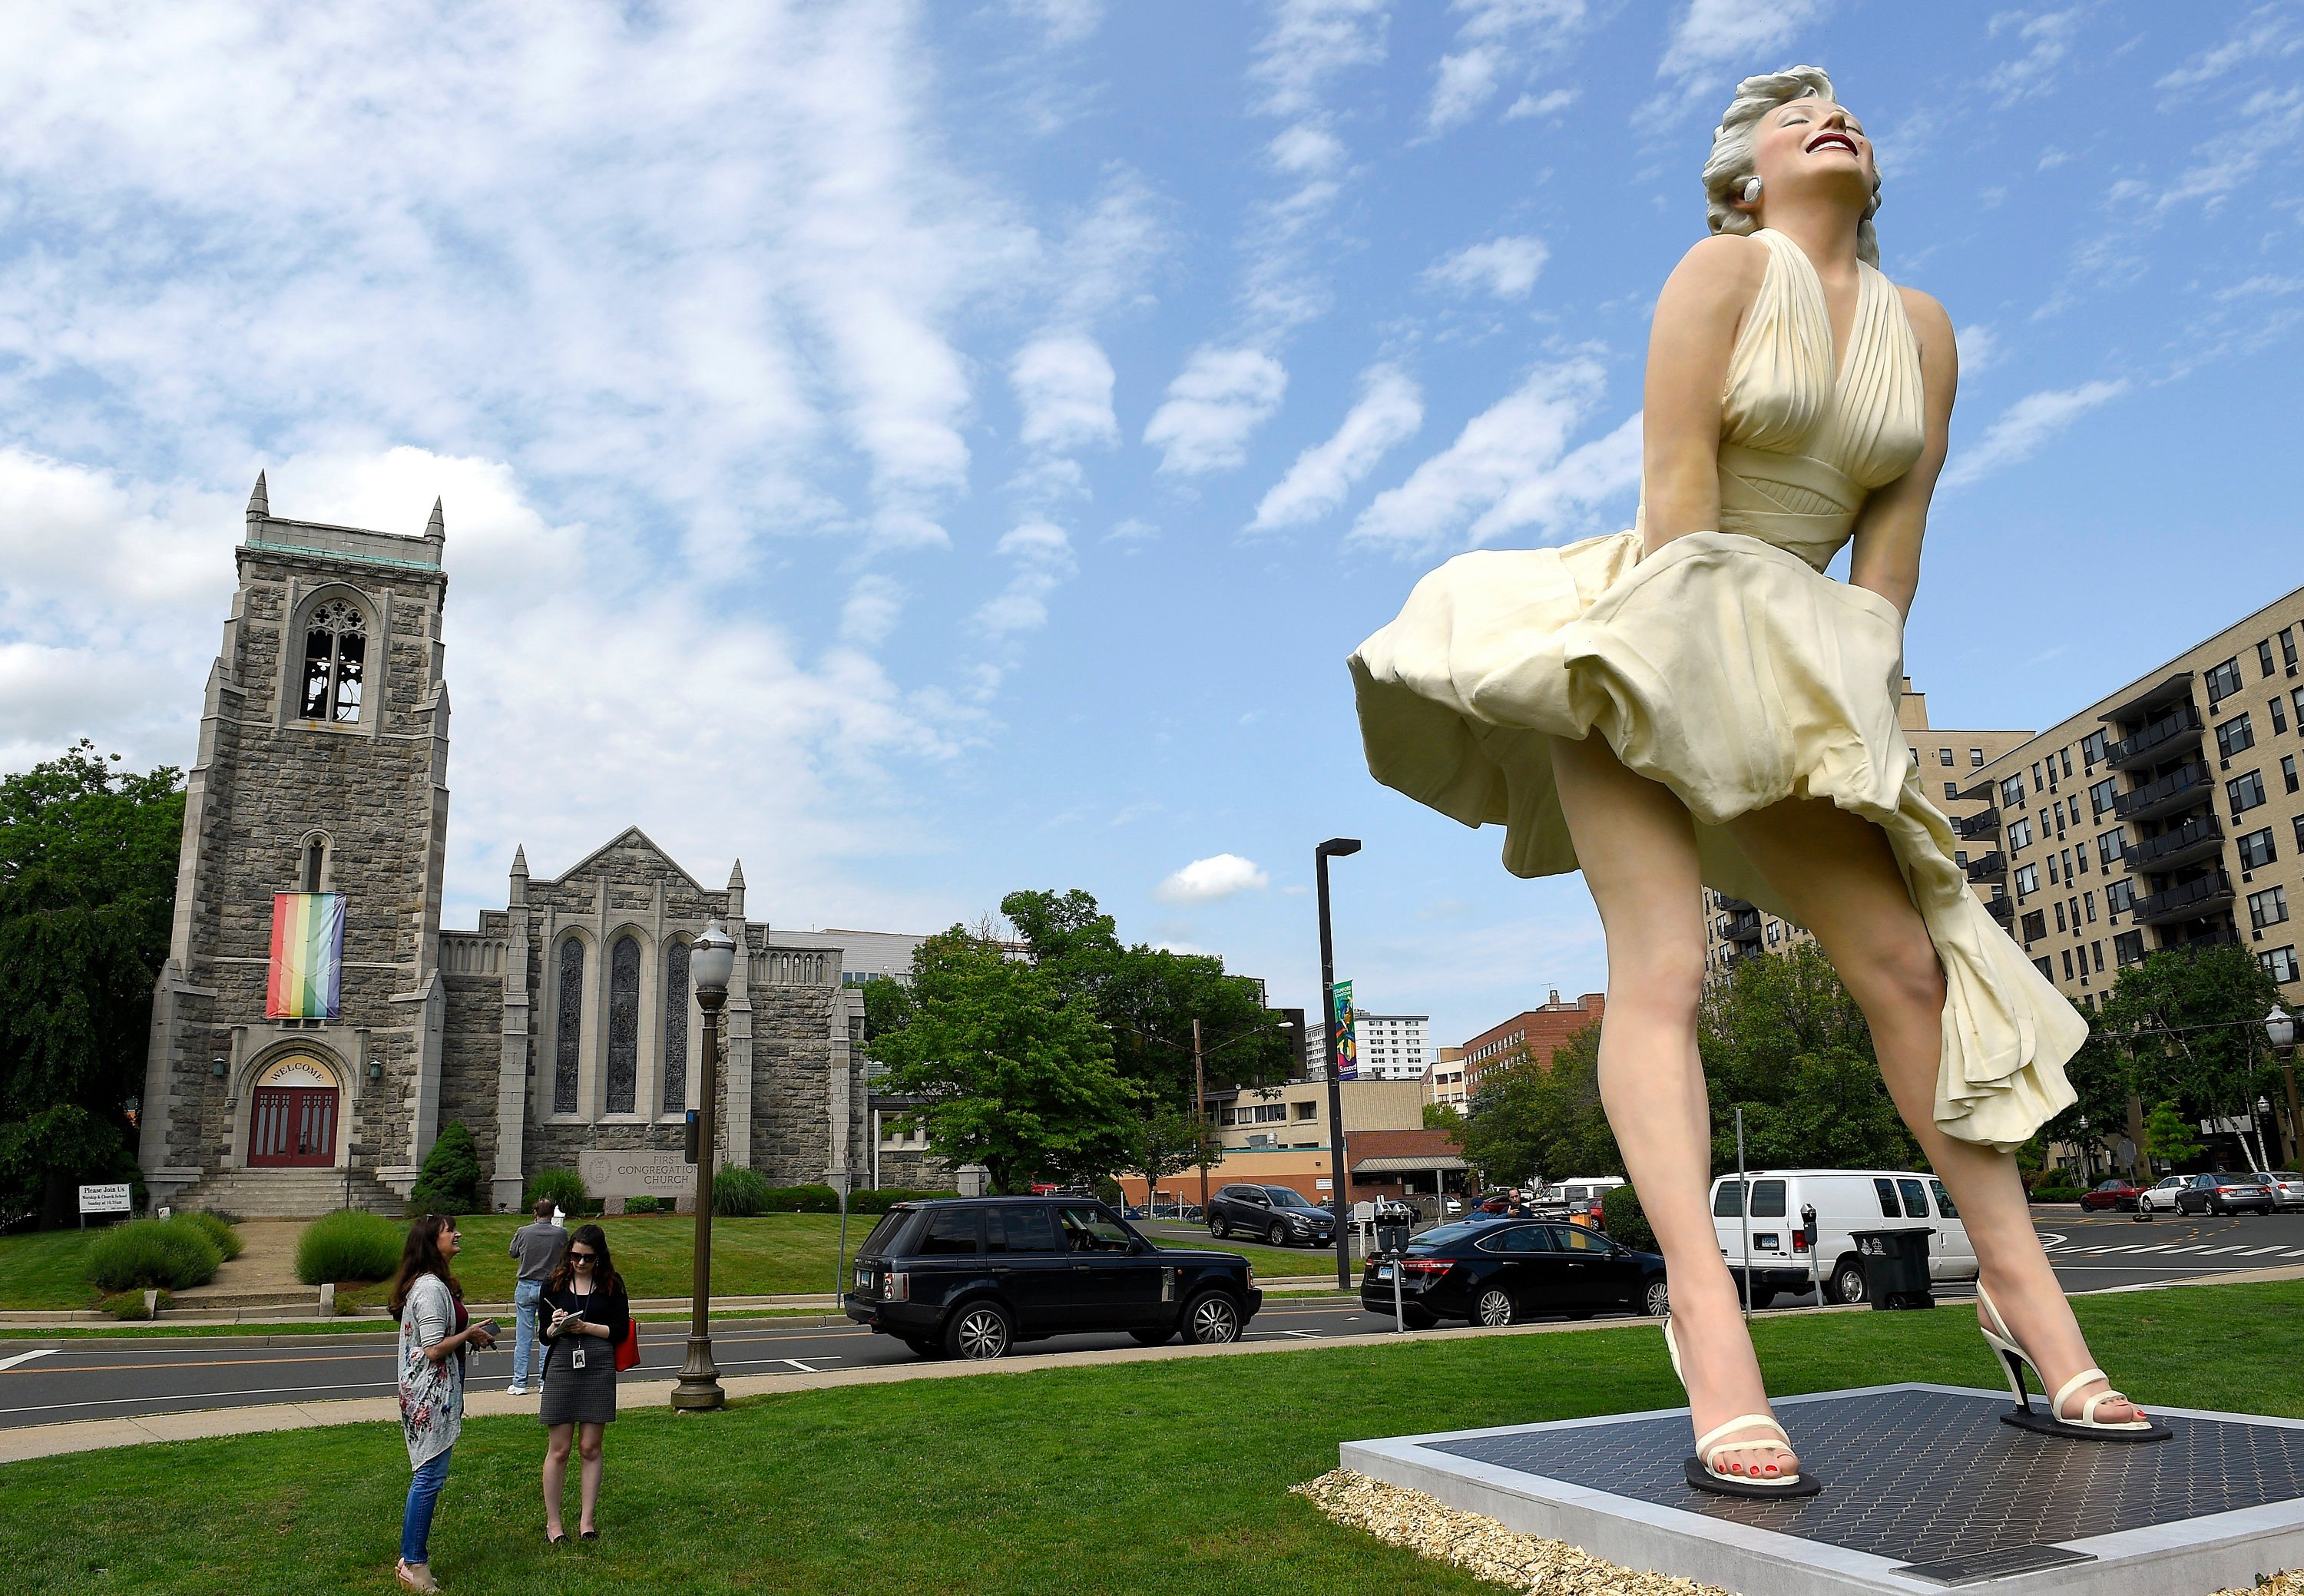 Statue of Marilyn Monroe famously exposing her rear displayed near church